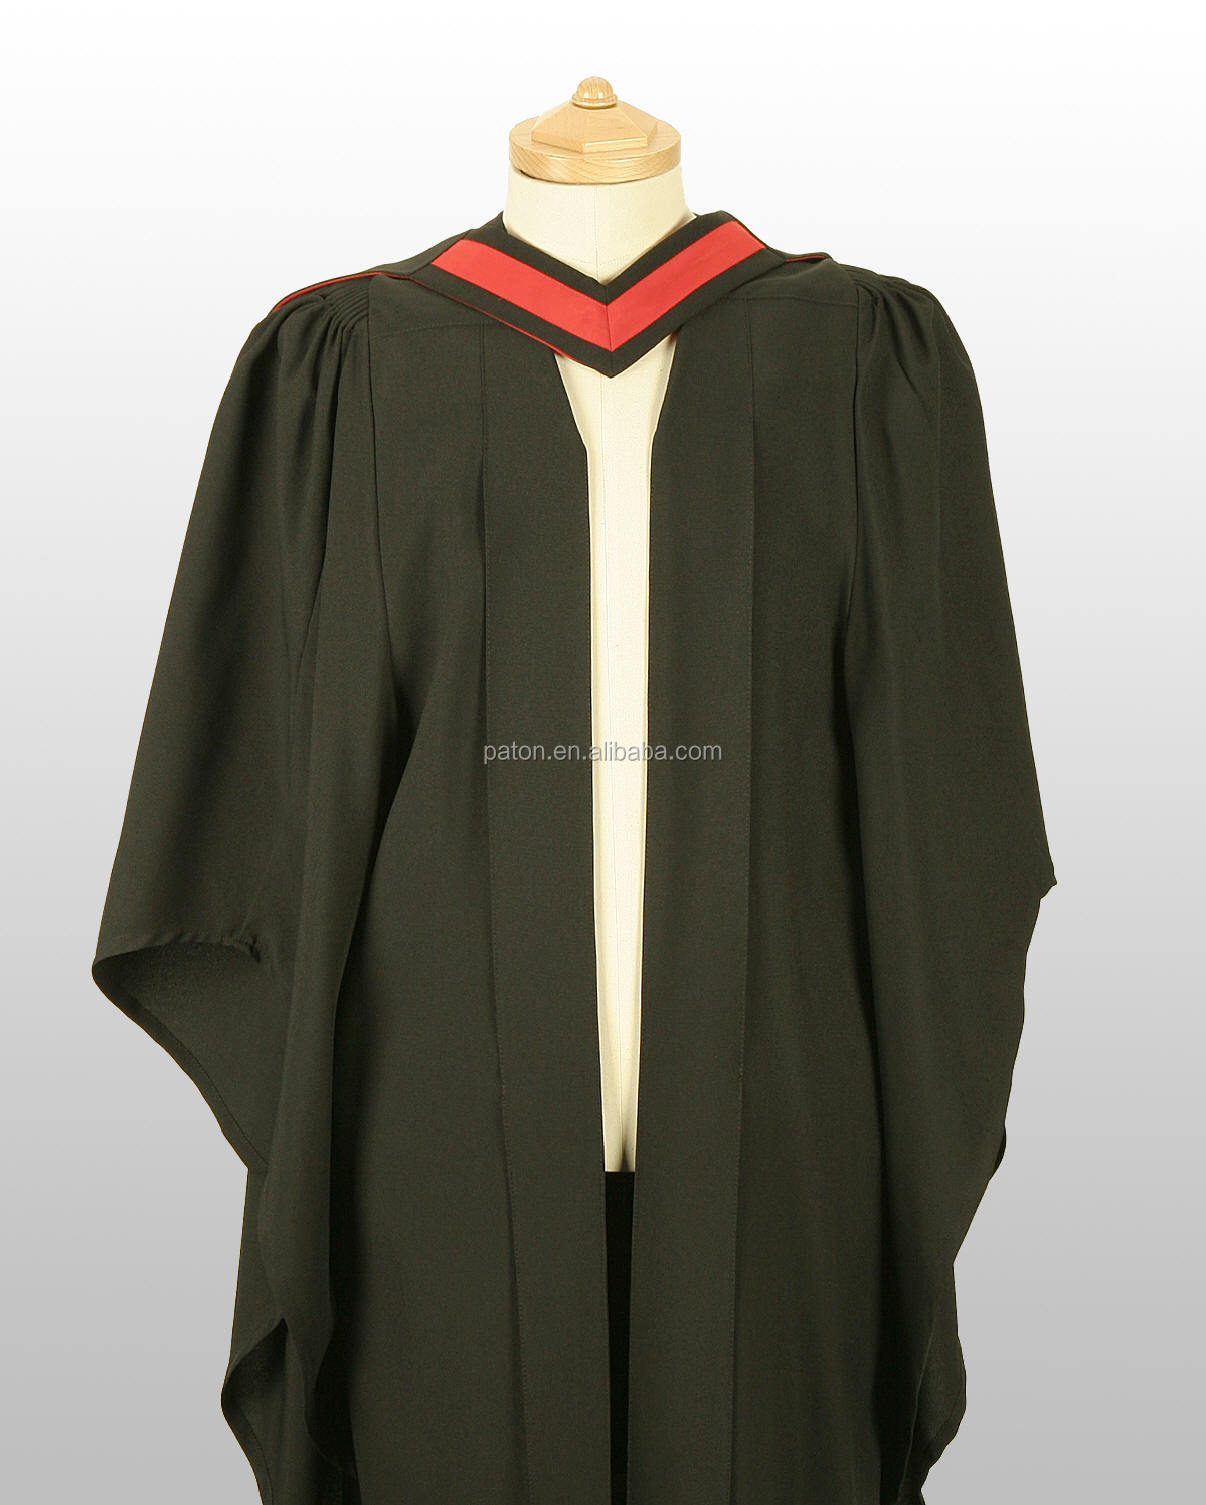 Graduation Gown Su-94 Hot Style Uk Graduation Gowns - Buy ...